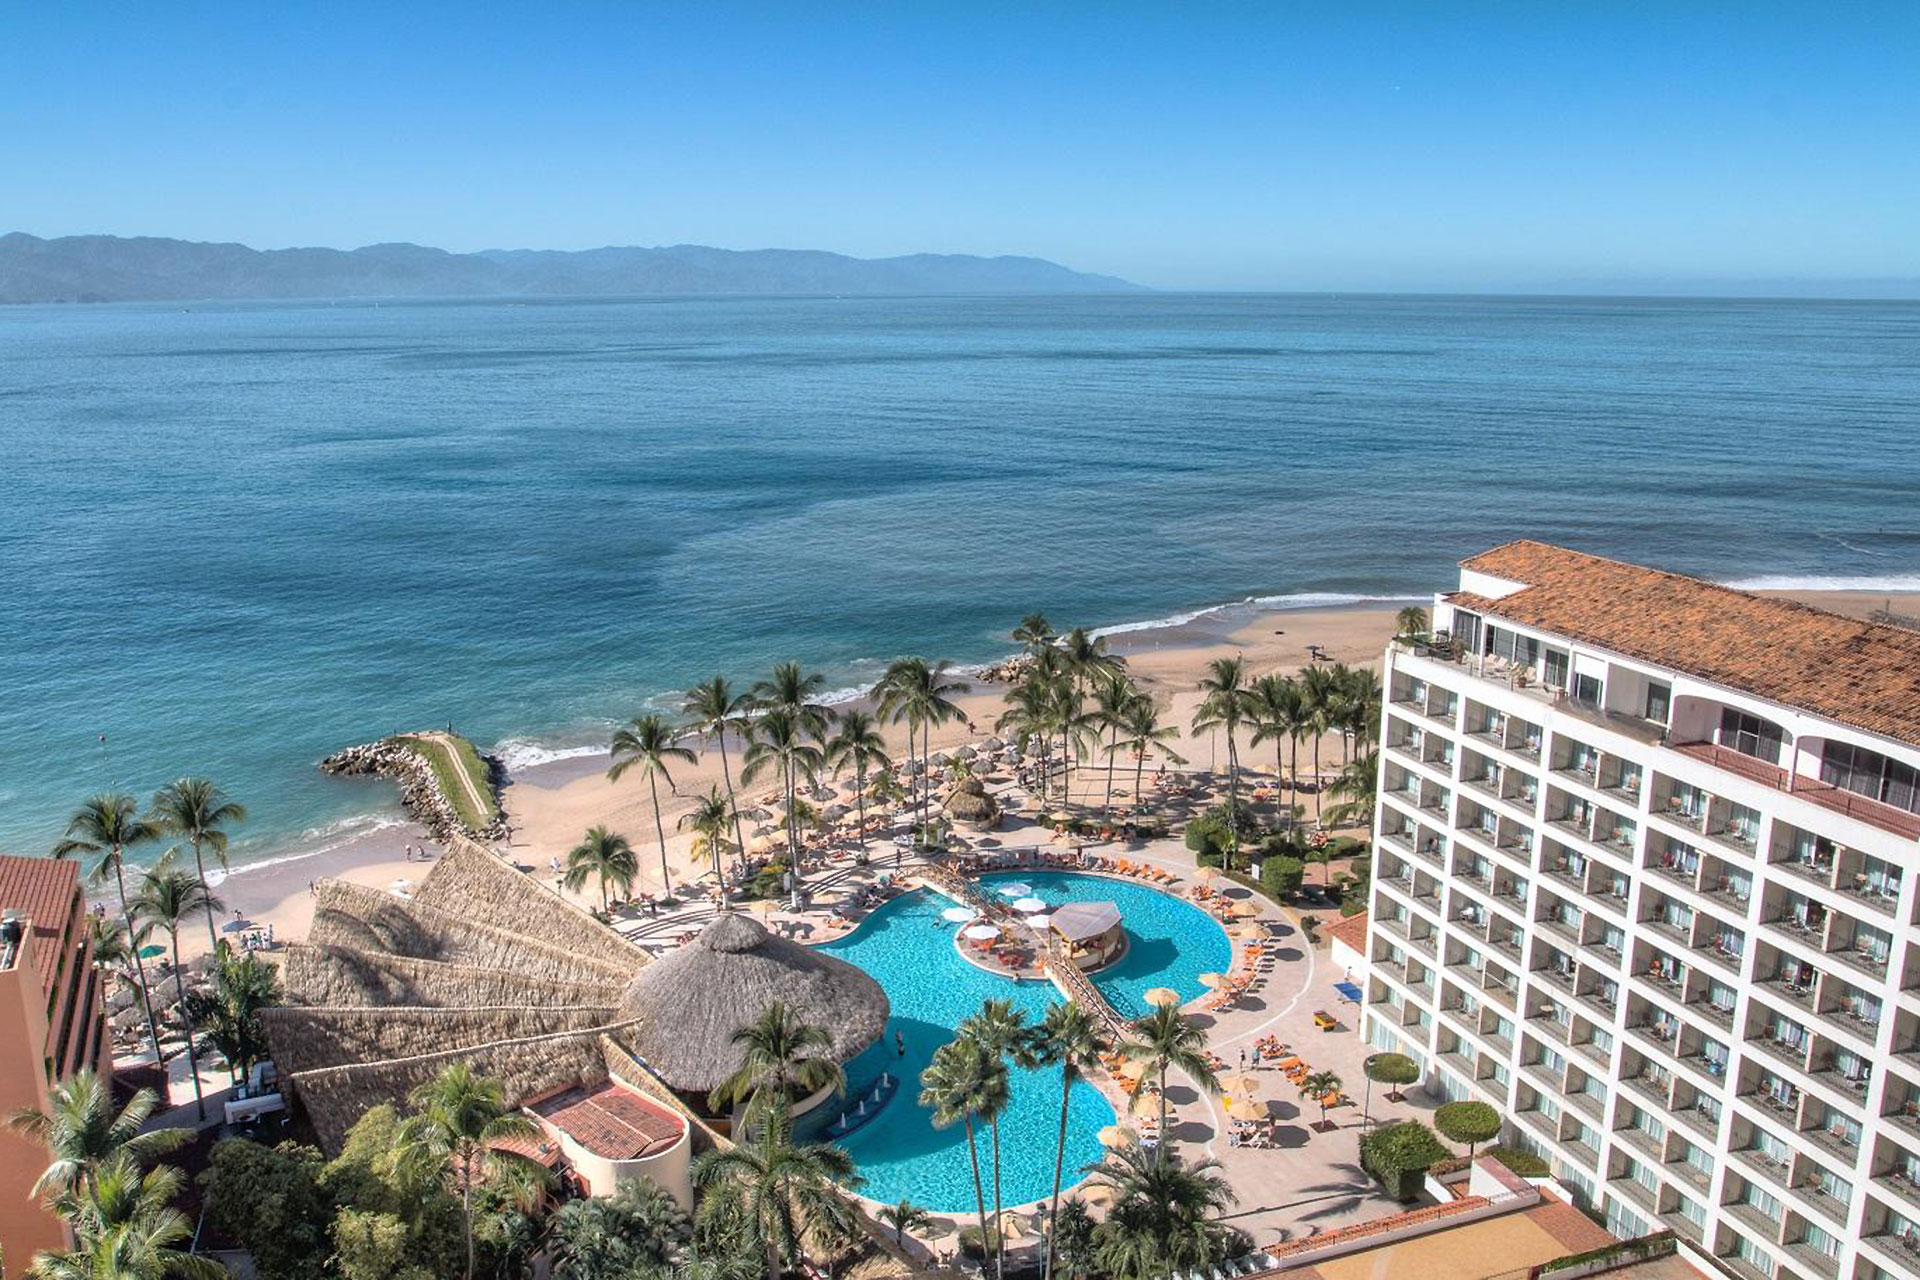 Aerial View of Sunscape Puerto Vallarta Resort and Spa; Courtesy of Sunscape Puerto Vallarta Resort and Spa